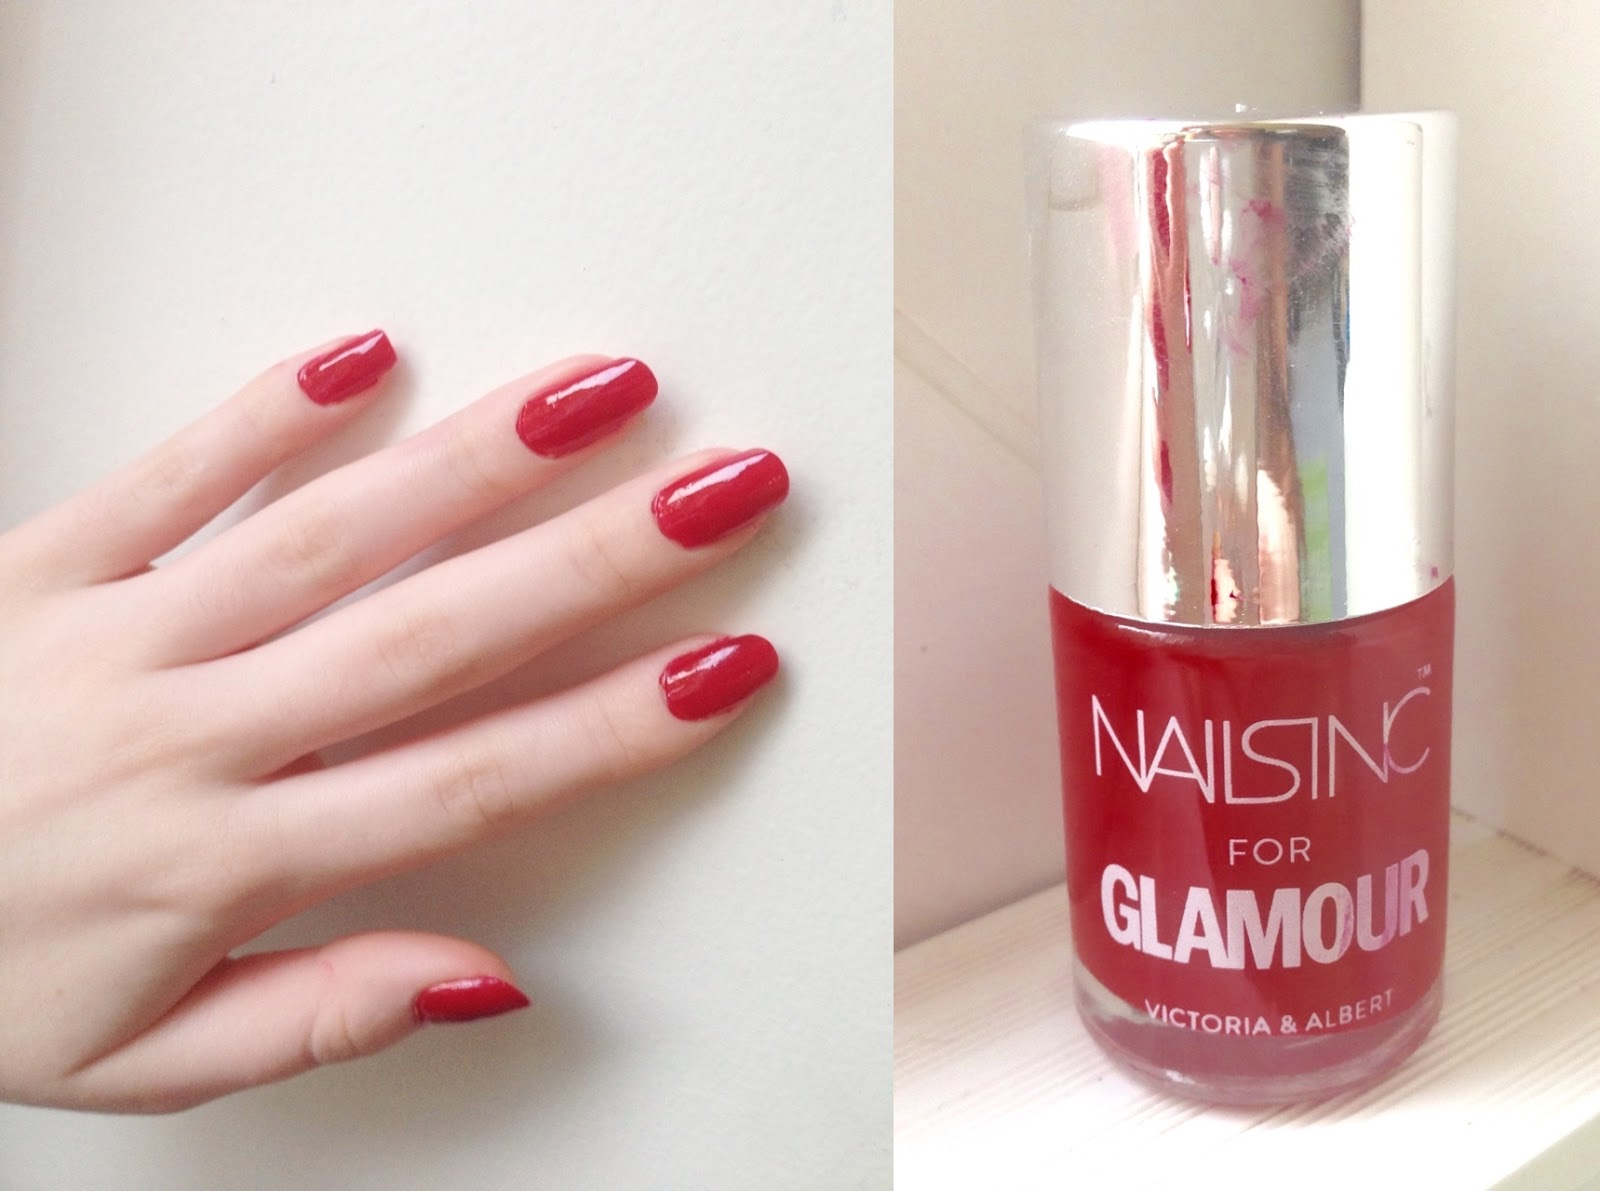 Lunar Look: The Must-Have Autumnal Shade ft. Nails Inc